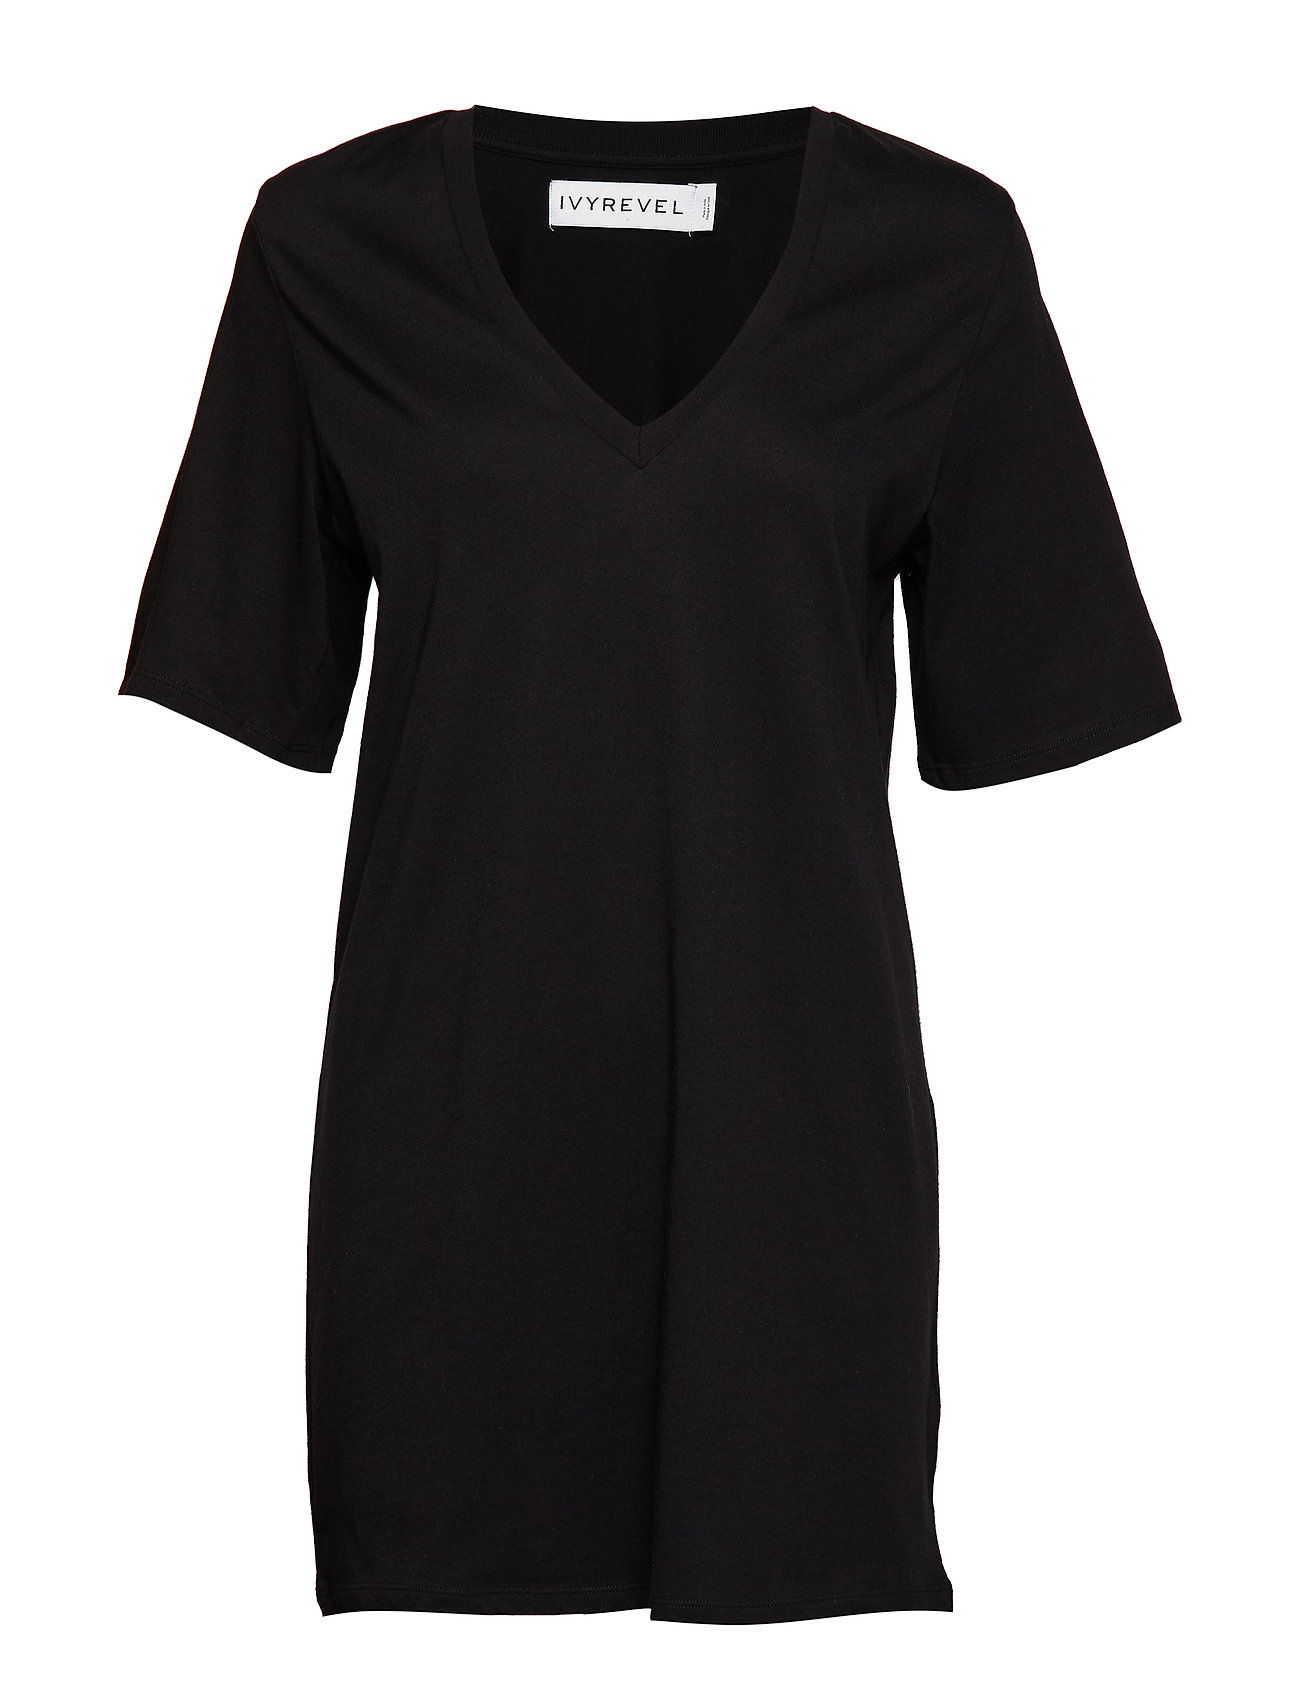 Ivyrevel Ivy Tshirt Dress - BLACK